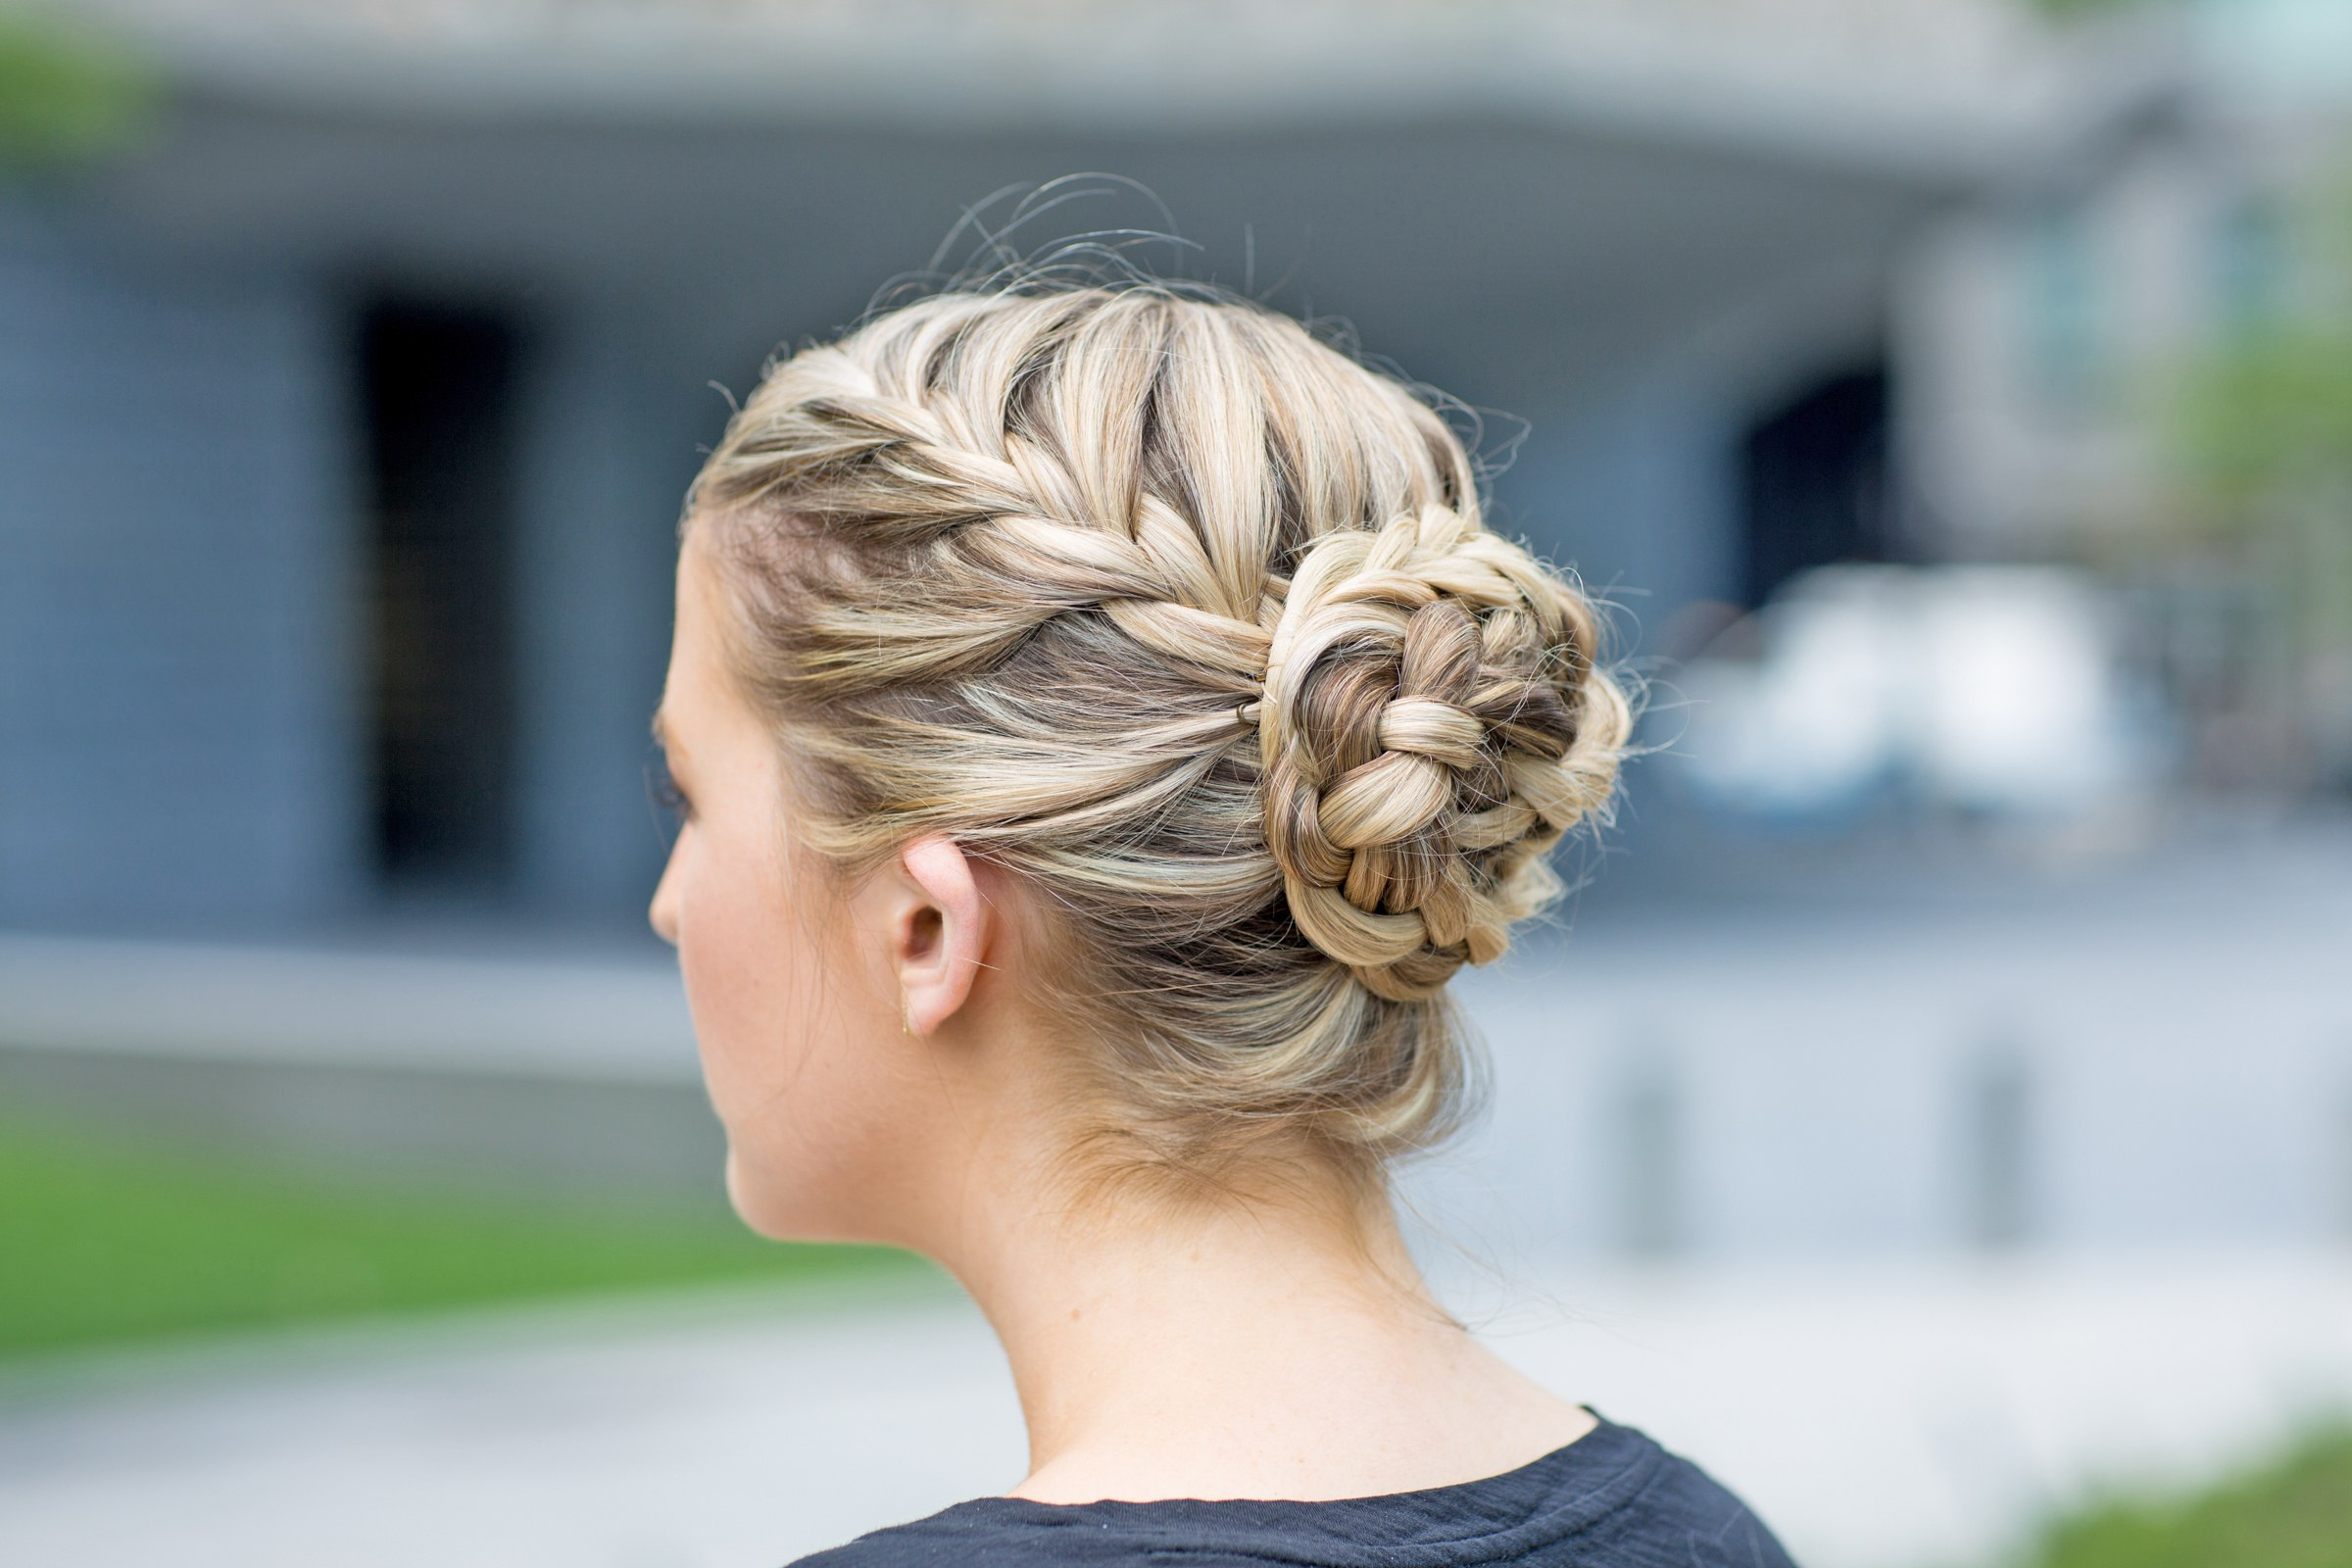 The Best Braided Hairstyles For Fine Hair And Curly Hair Regarding 2019 Plaited Chignon Braid Hairstyles (View 10 of 20)